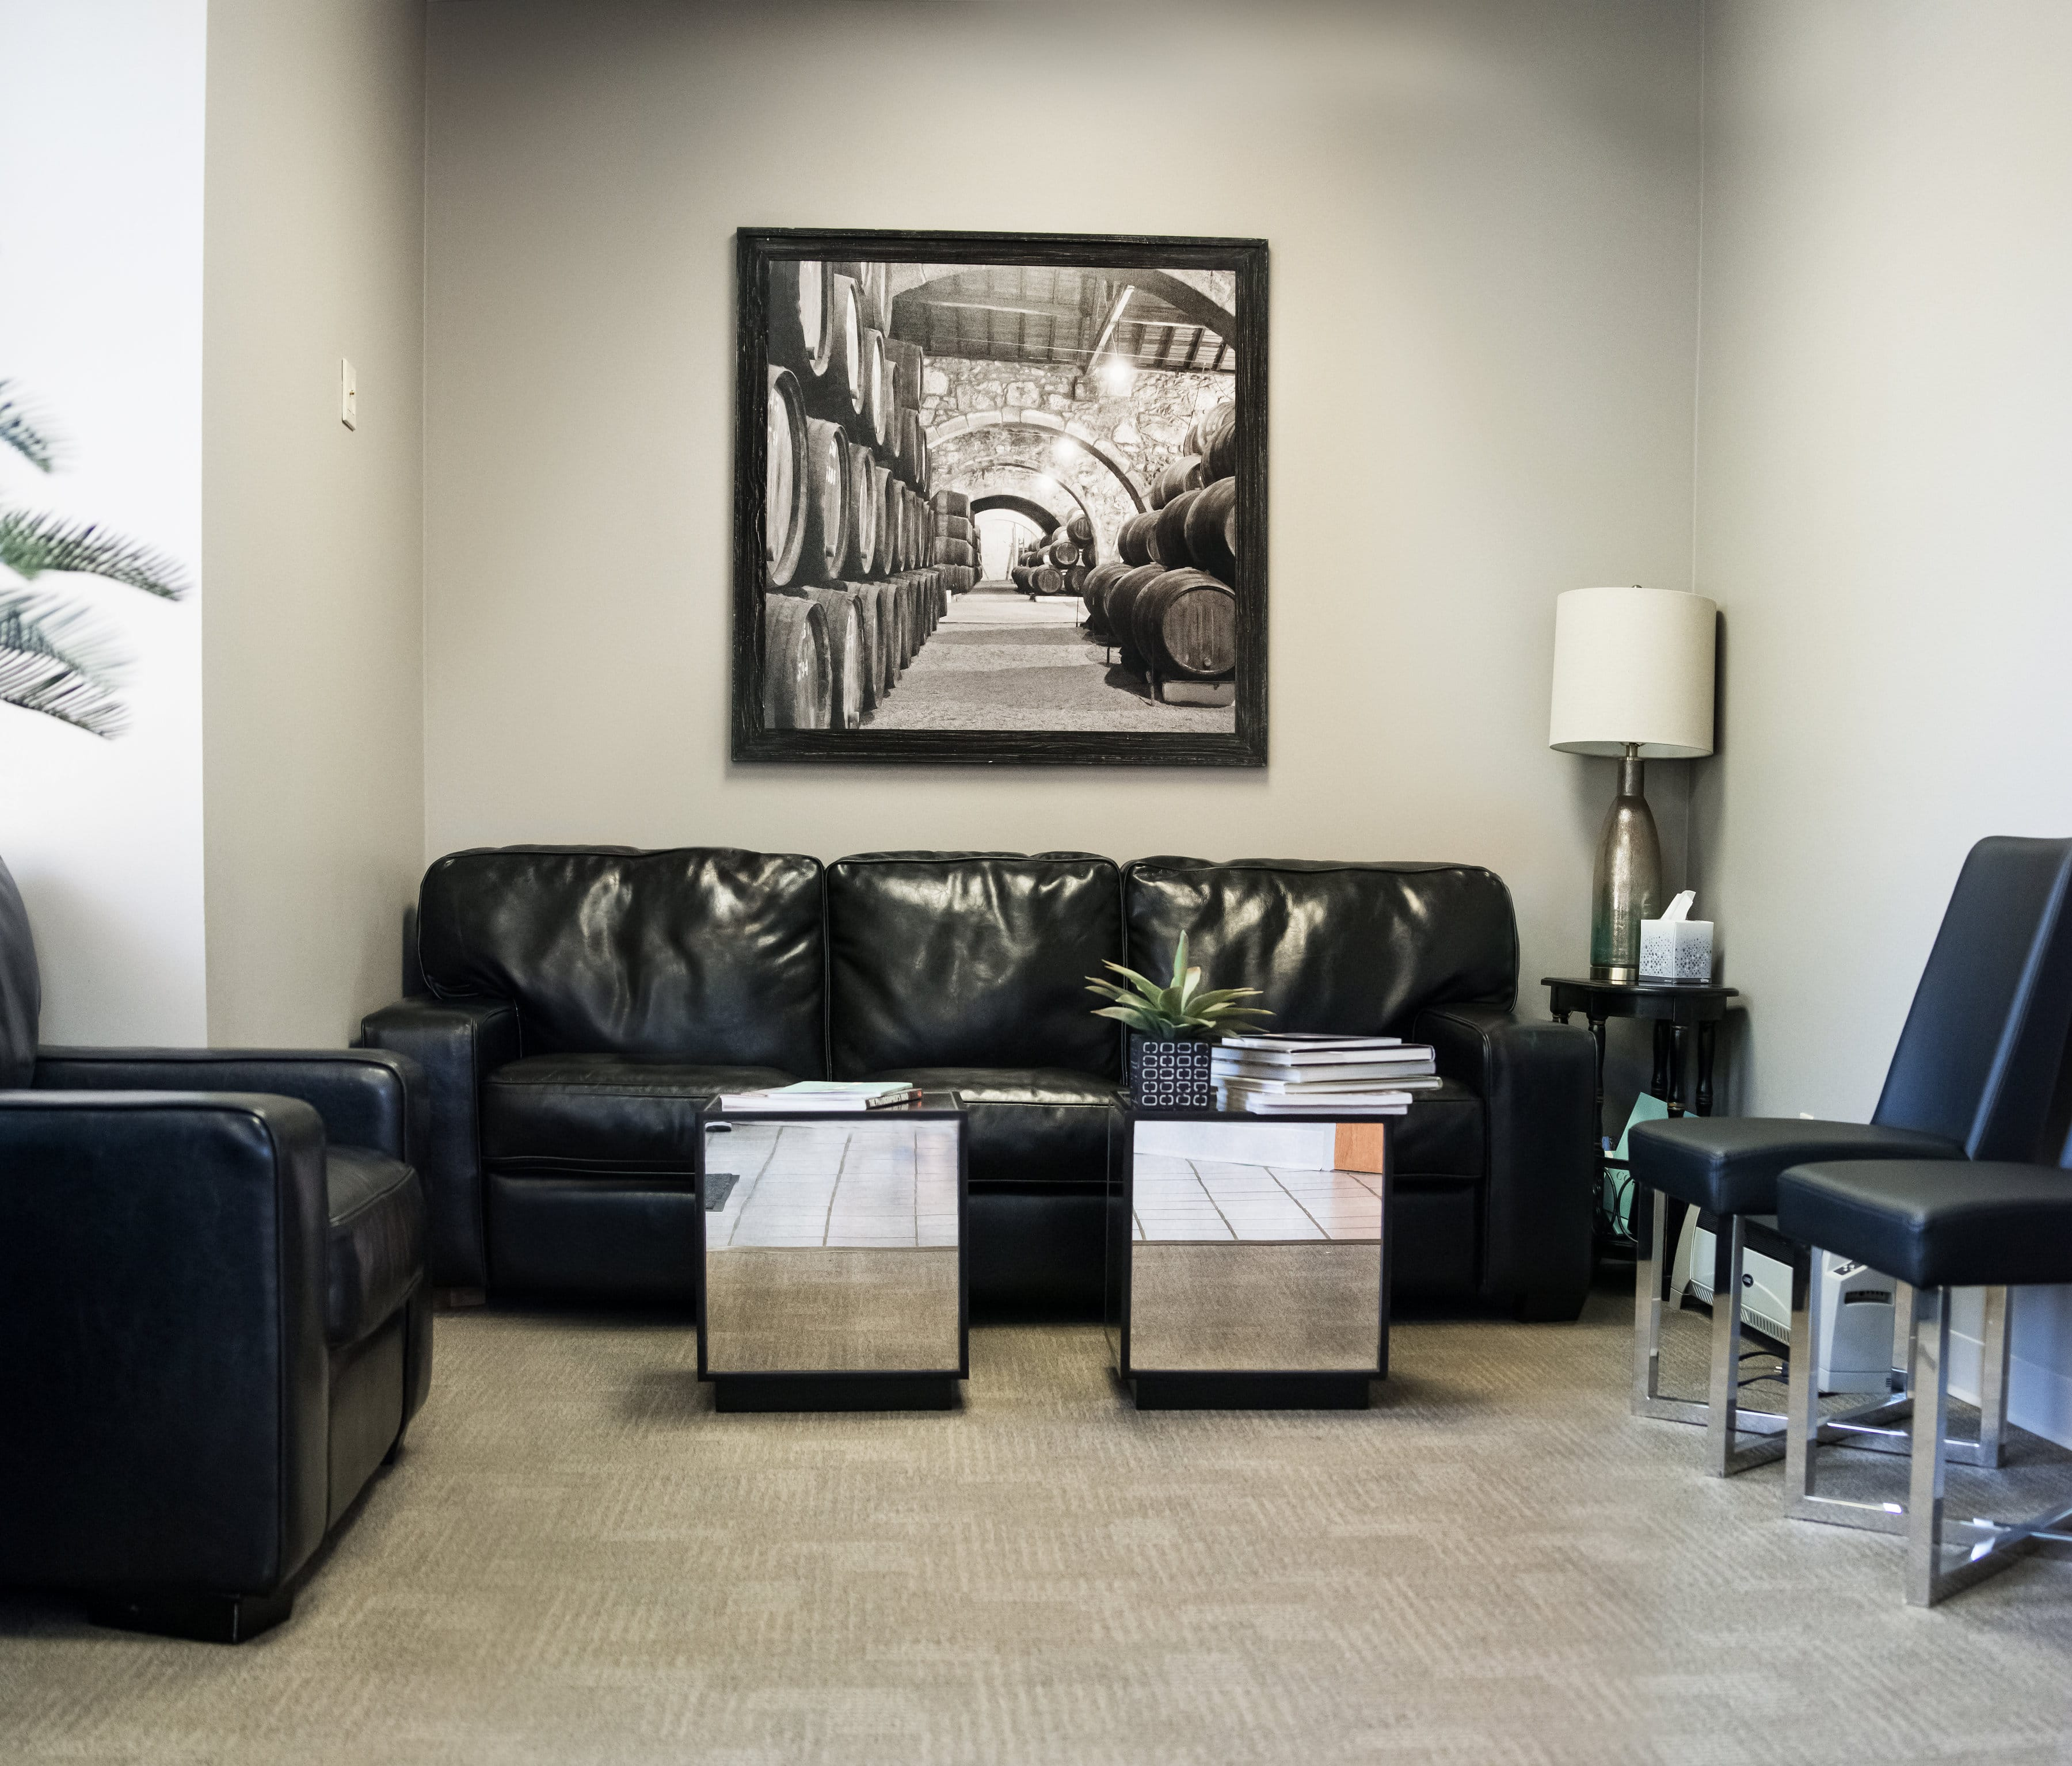 Stoner Periodontic Specialists - Chillicothe, OH - Interior Waiting Area